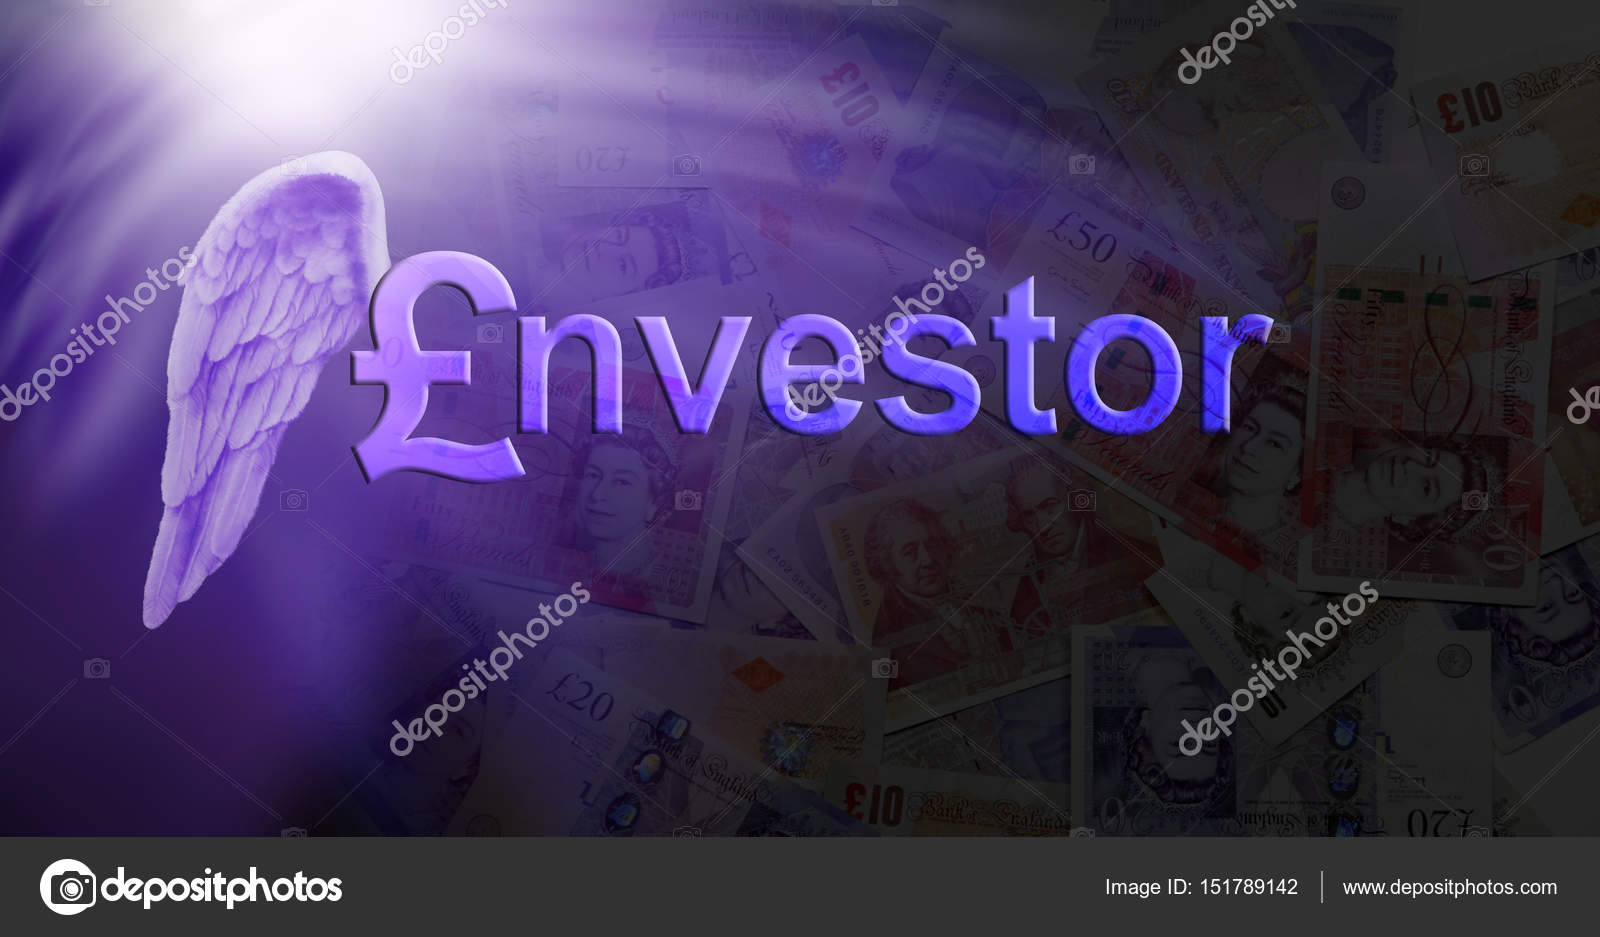 Cancelletto In Inglese : Angel investor sterlina inglese u foto stock healing